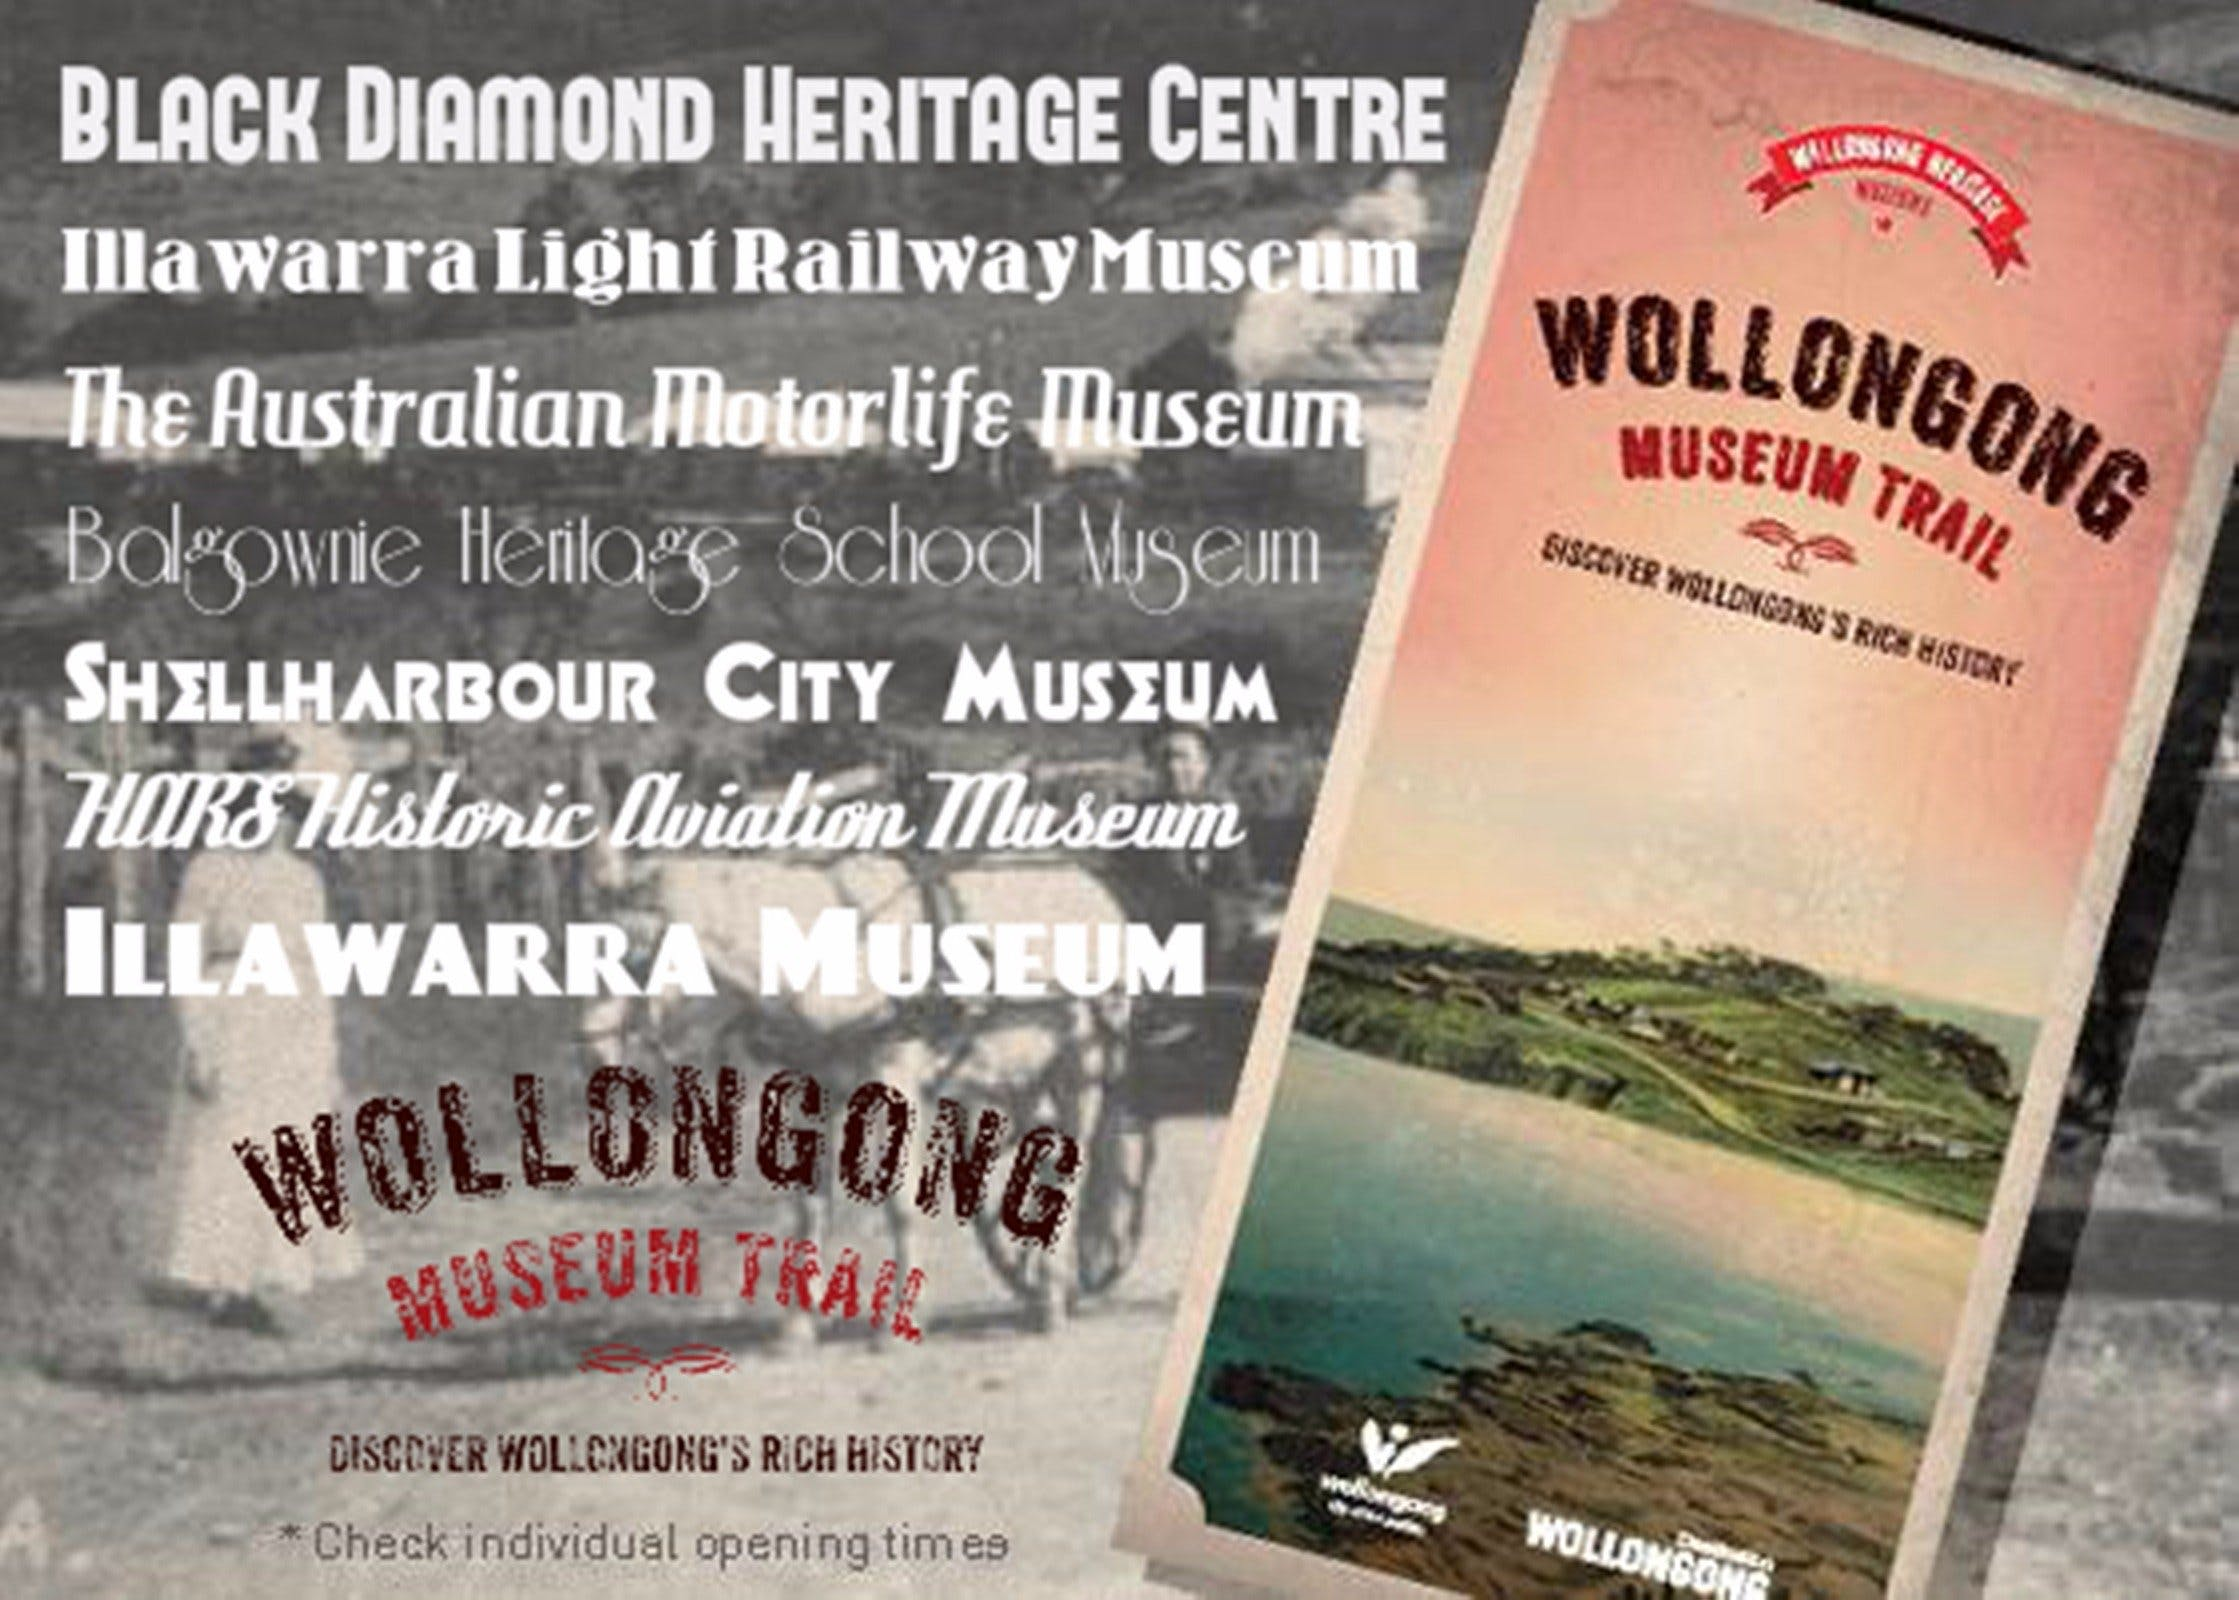 Wollongong Museum Trail - Wagga Wagga Accommodation